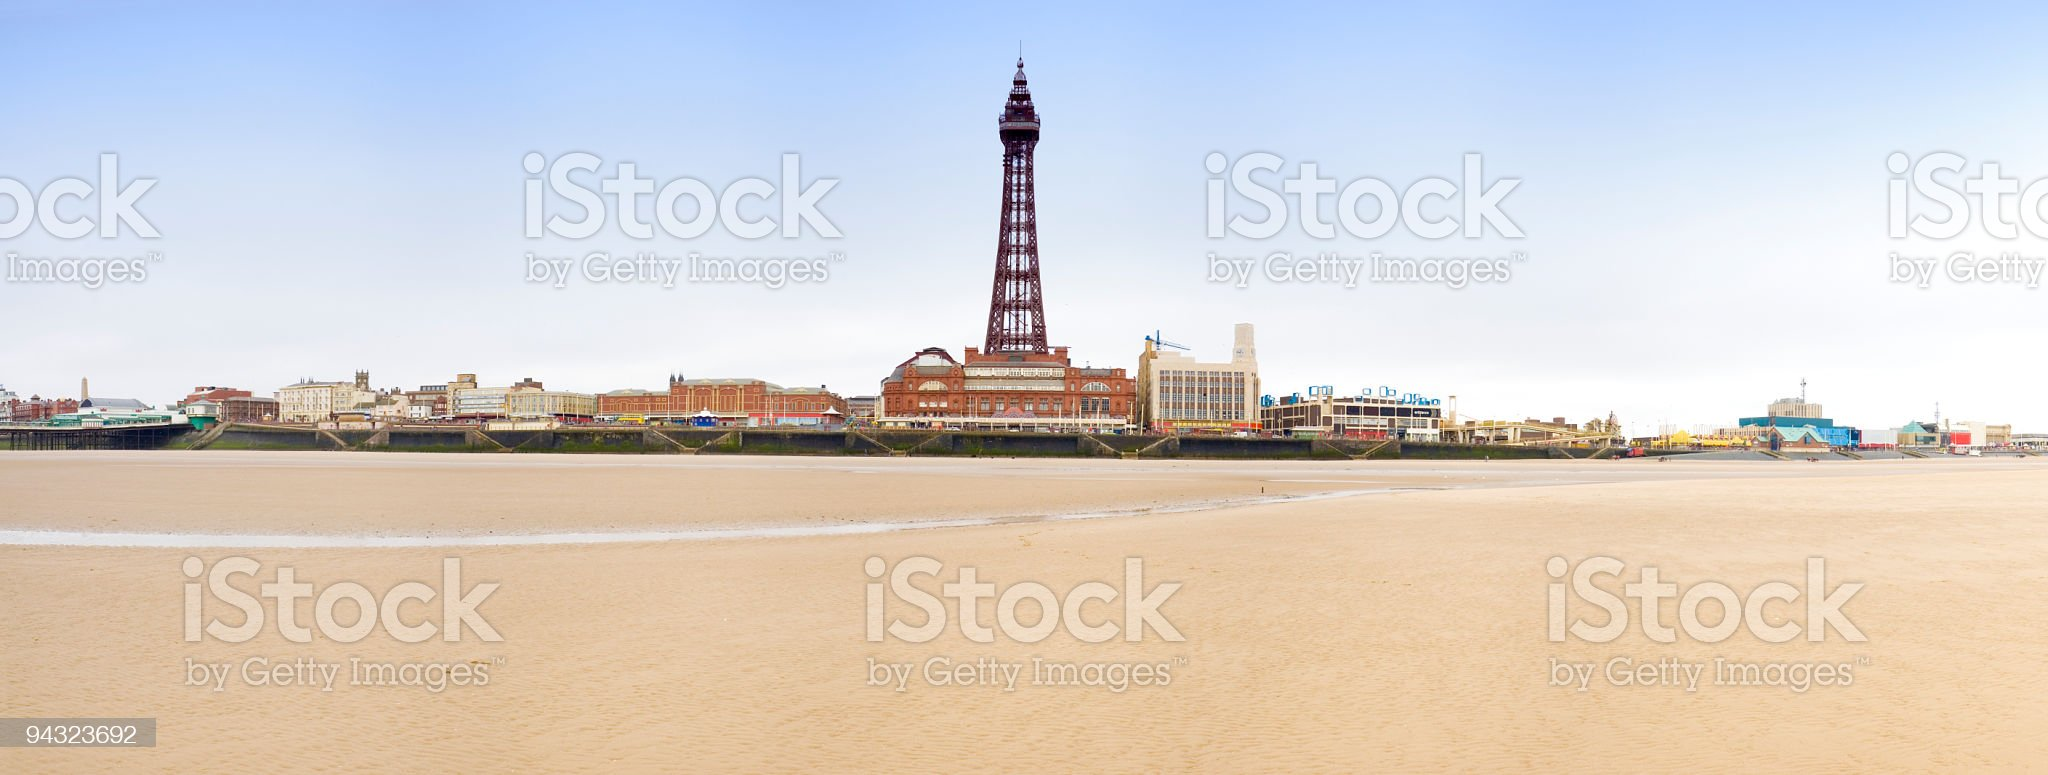 Blackpool beach and tower royalty-free stock photo